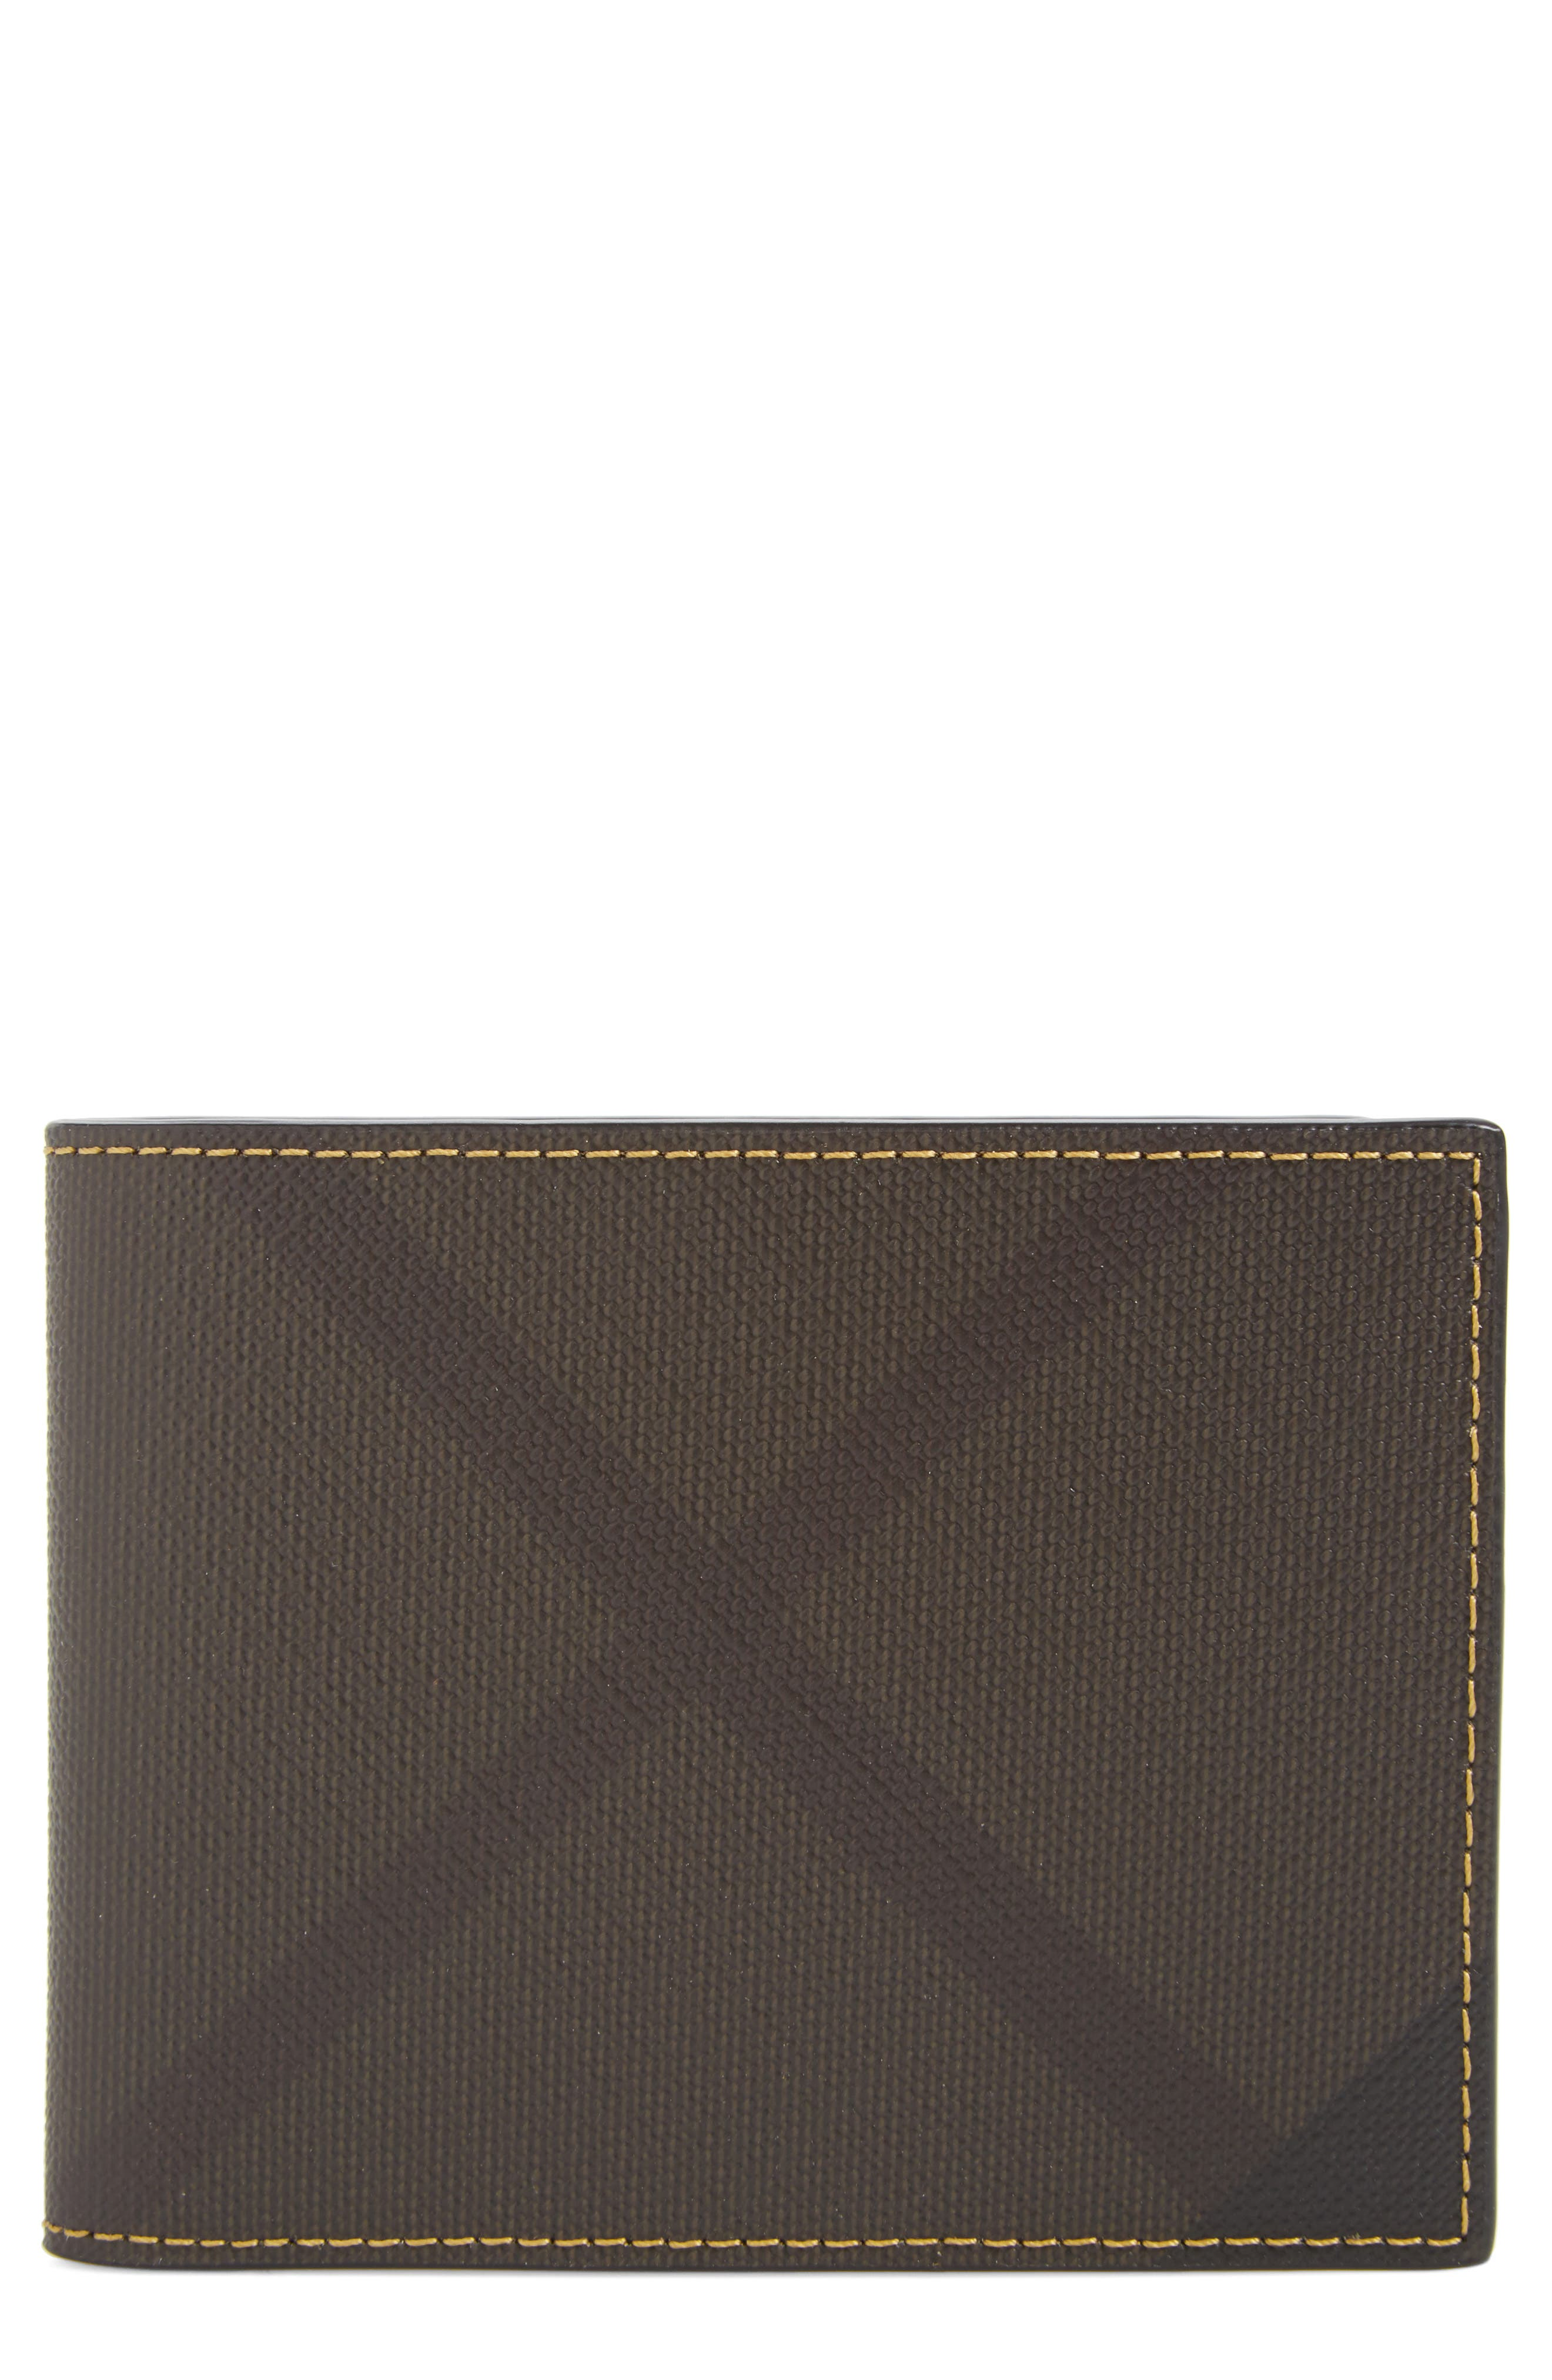 Burberry Sandon Wallet